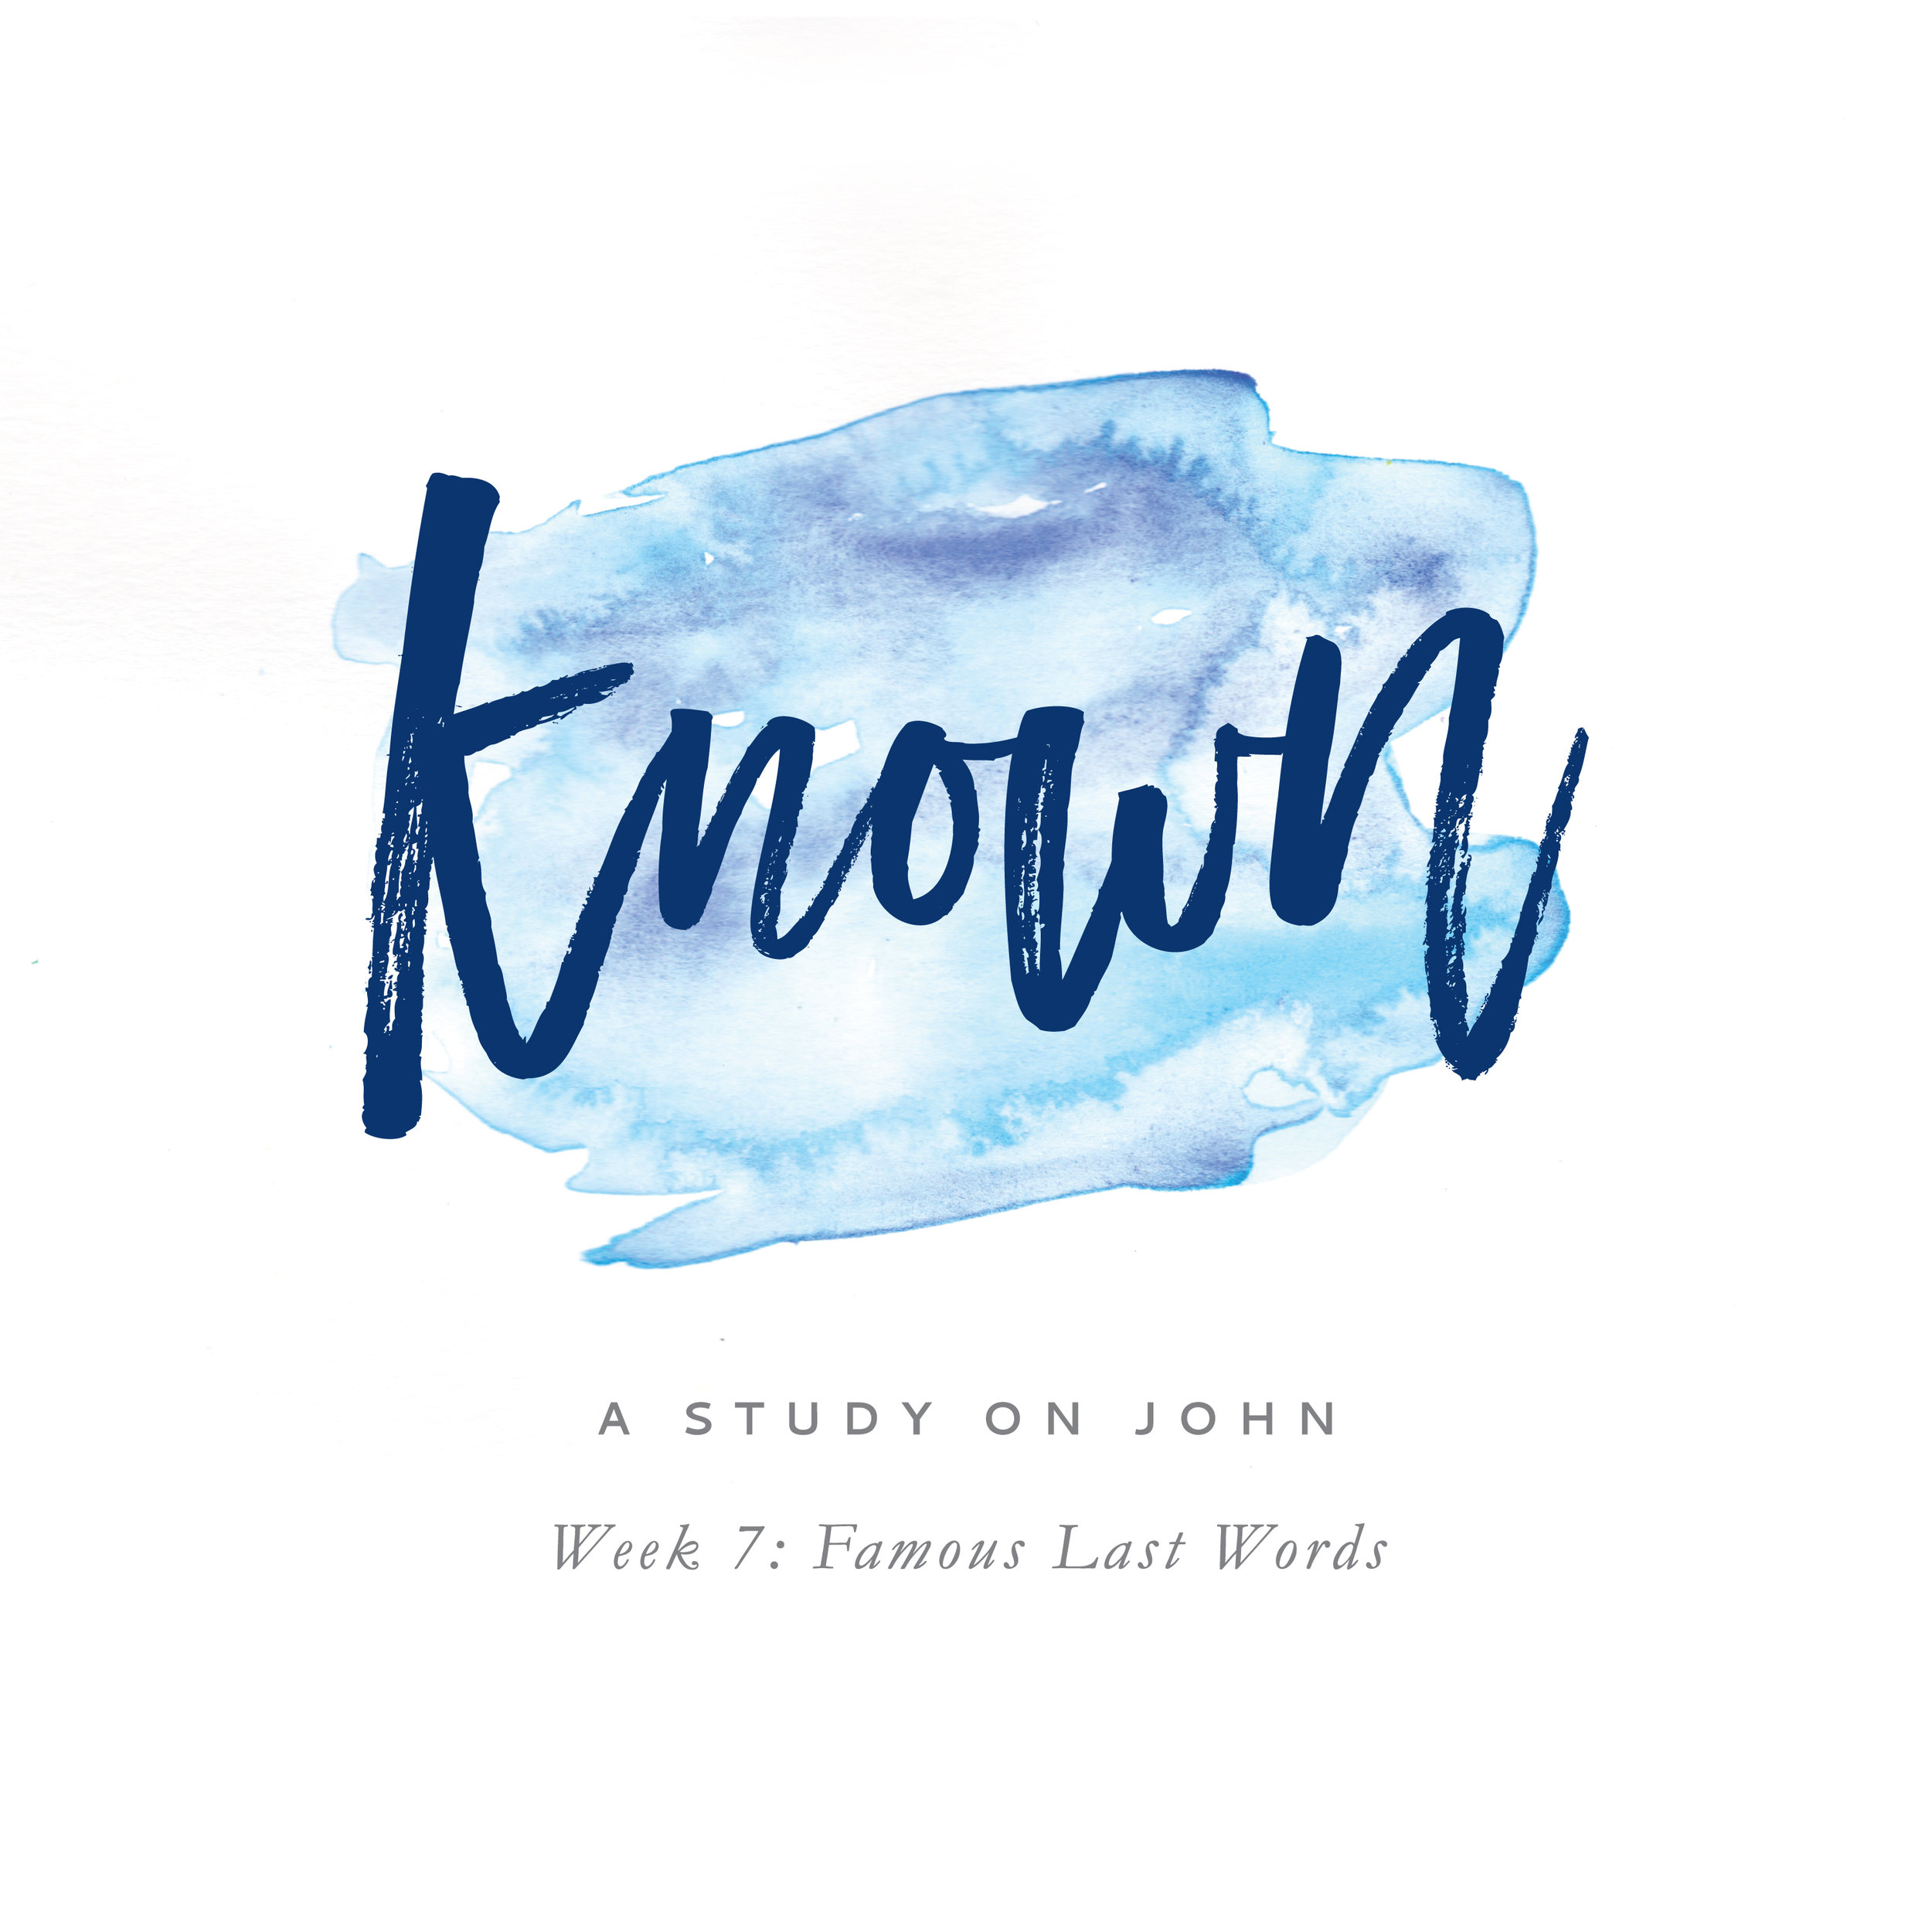 Known: A Study on John by Leslie Ann Jones. Week 7 Podcast. In this lesson, we cover John 14-17 and consider what Jesus' last words to the disciples have to do with us. The lesson corresponds with page 43 (Week 7: Famous Last Words) of the learner workbook, available for download at leslieannjones.com/known.